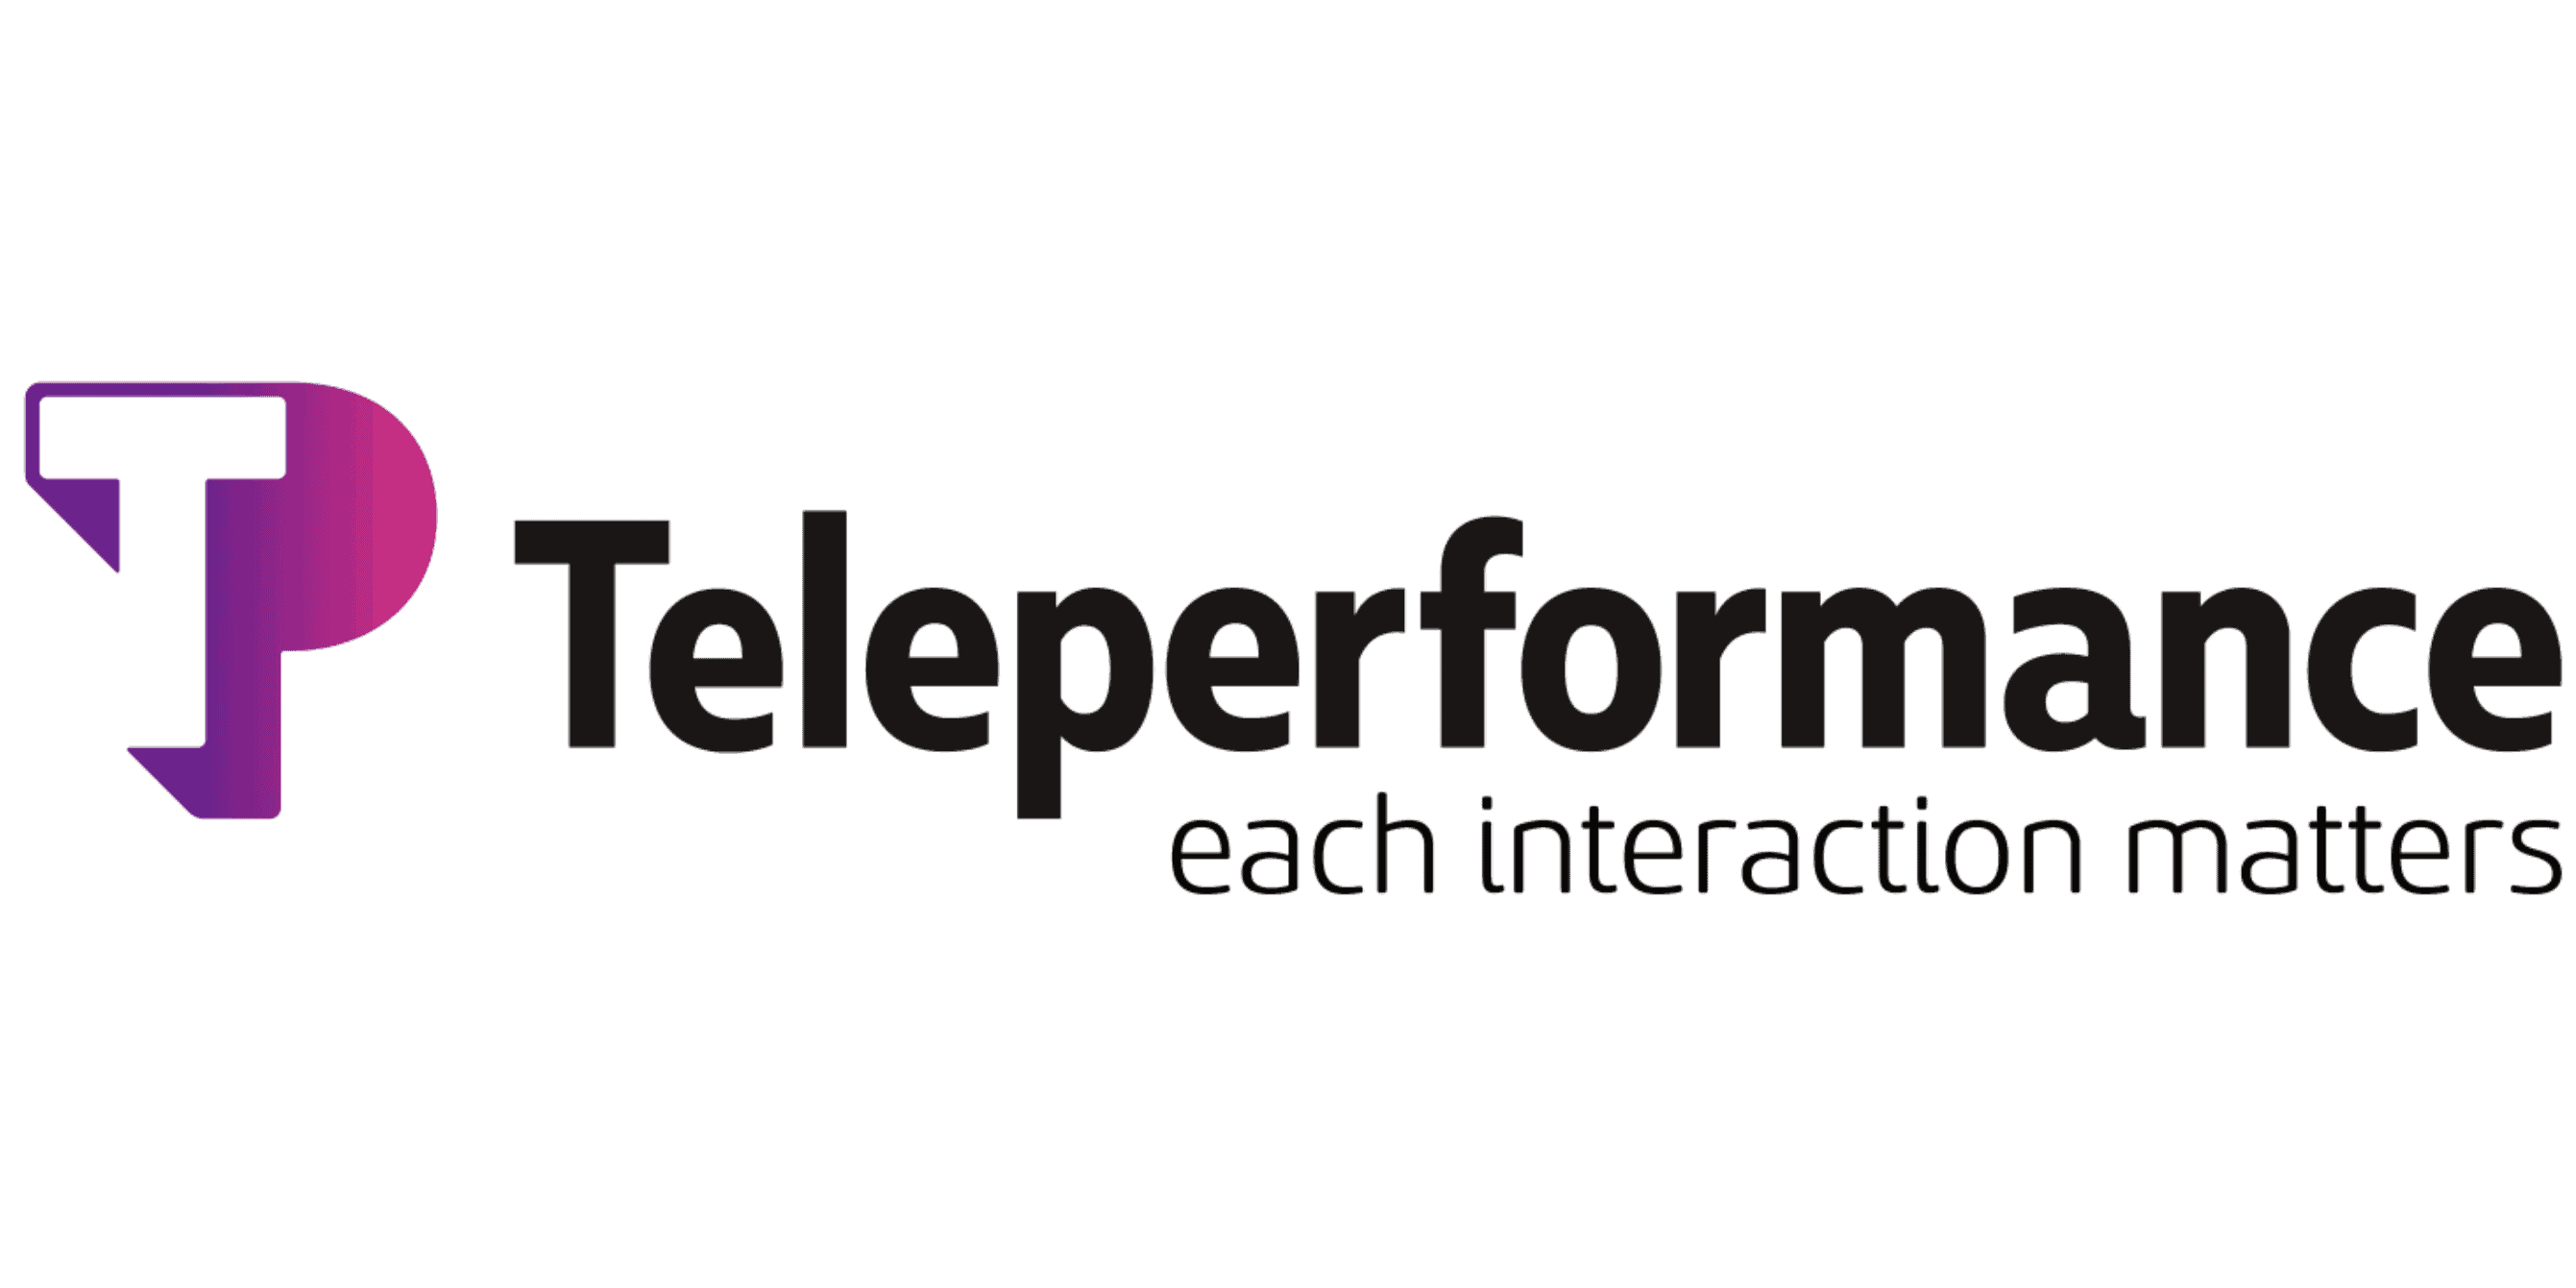 talentportugal-teleperformance logo